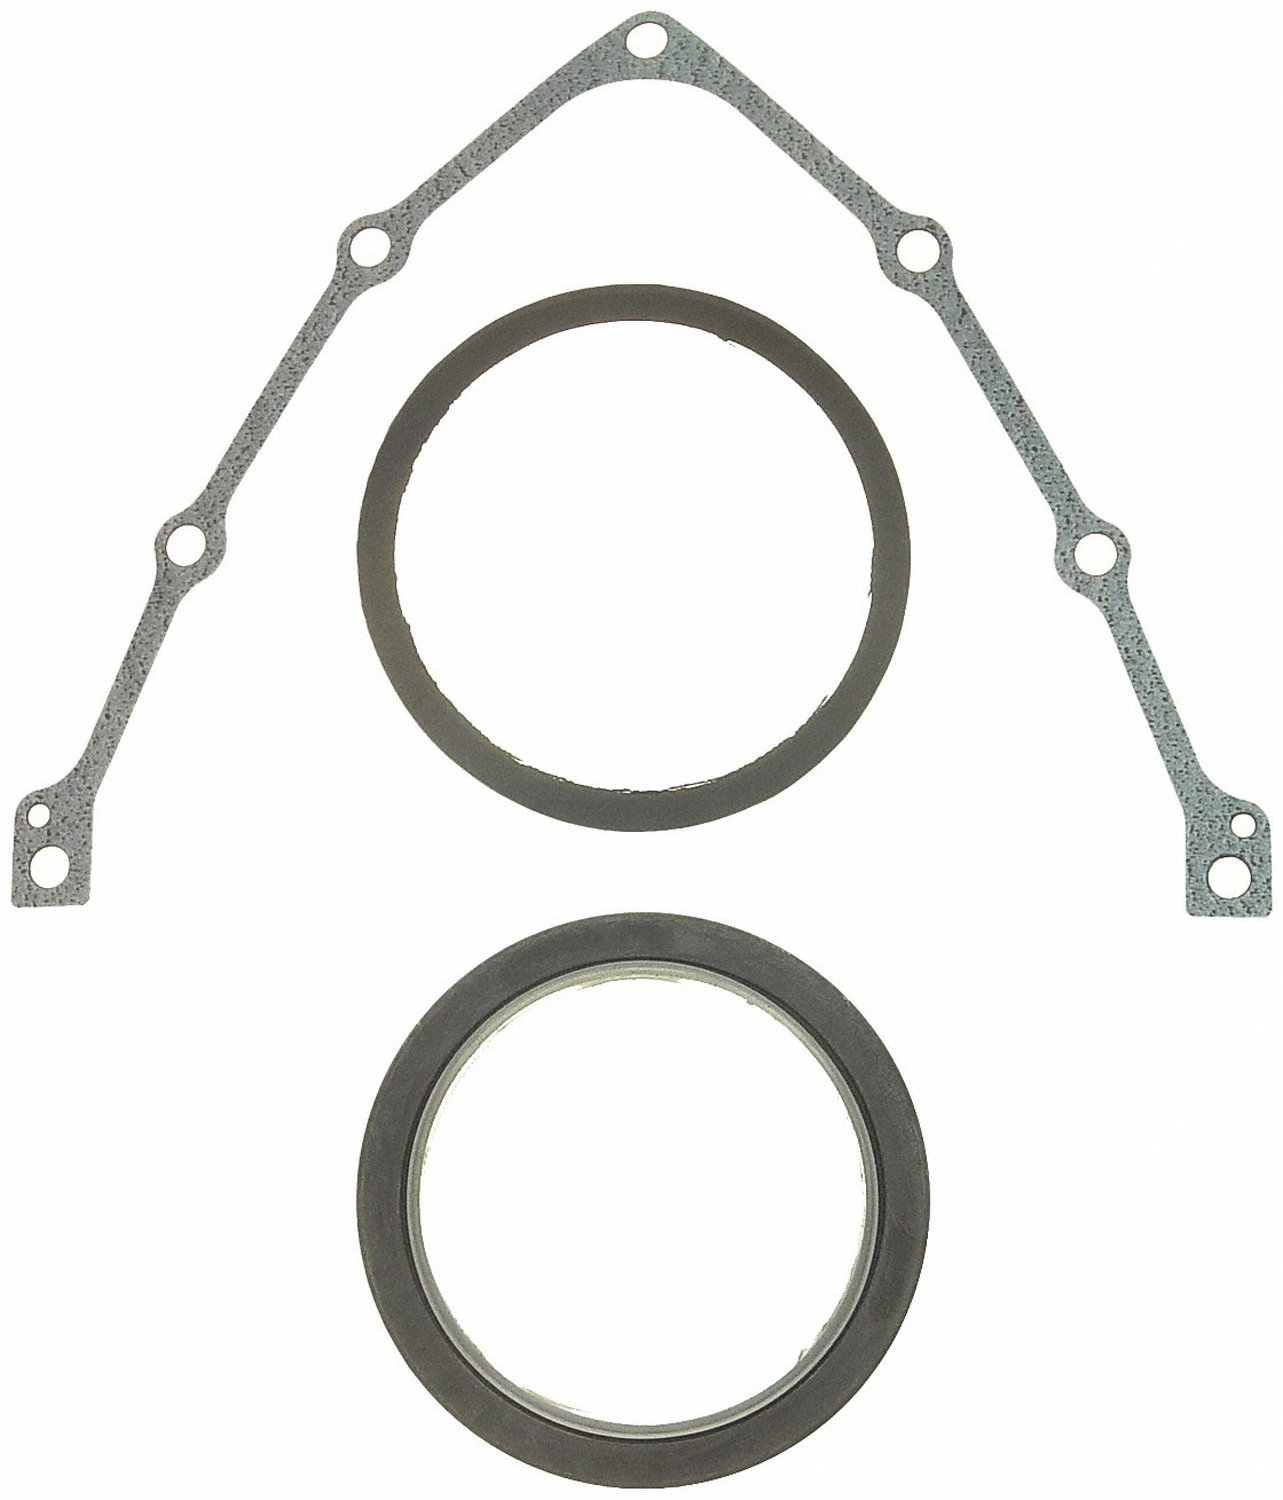 Fel-Pro BS 40011 Rear Engine Main Seal Set